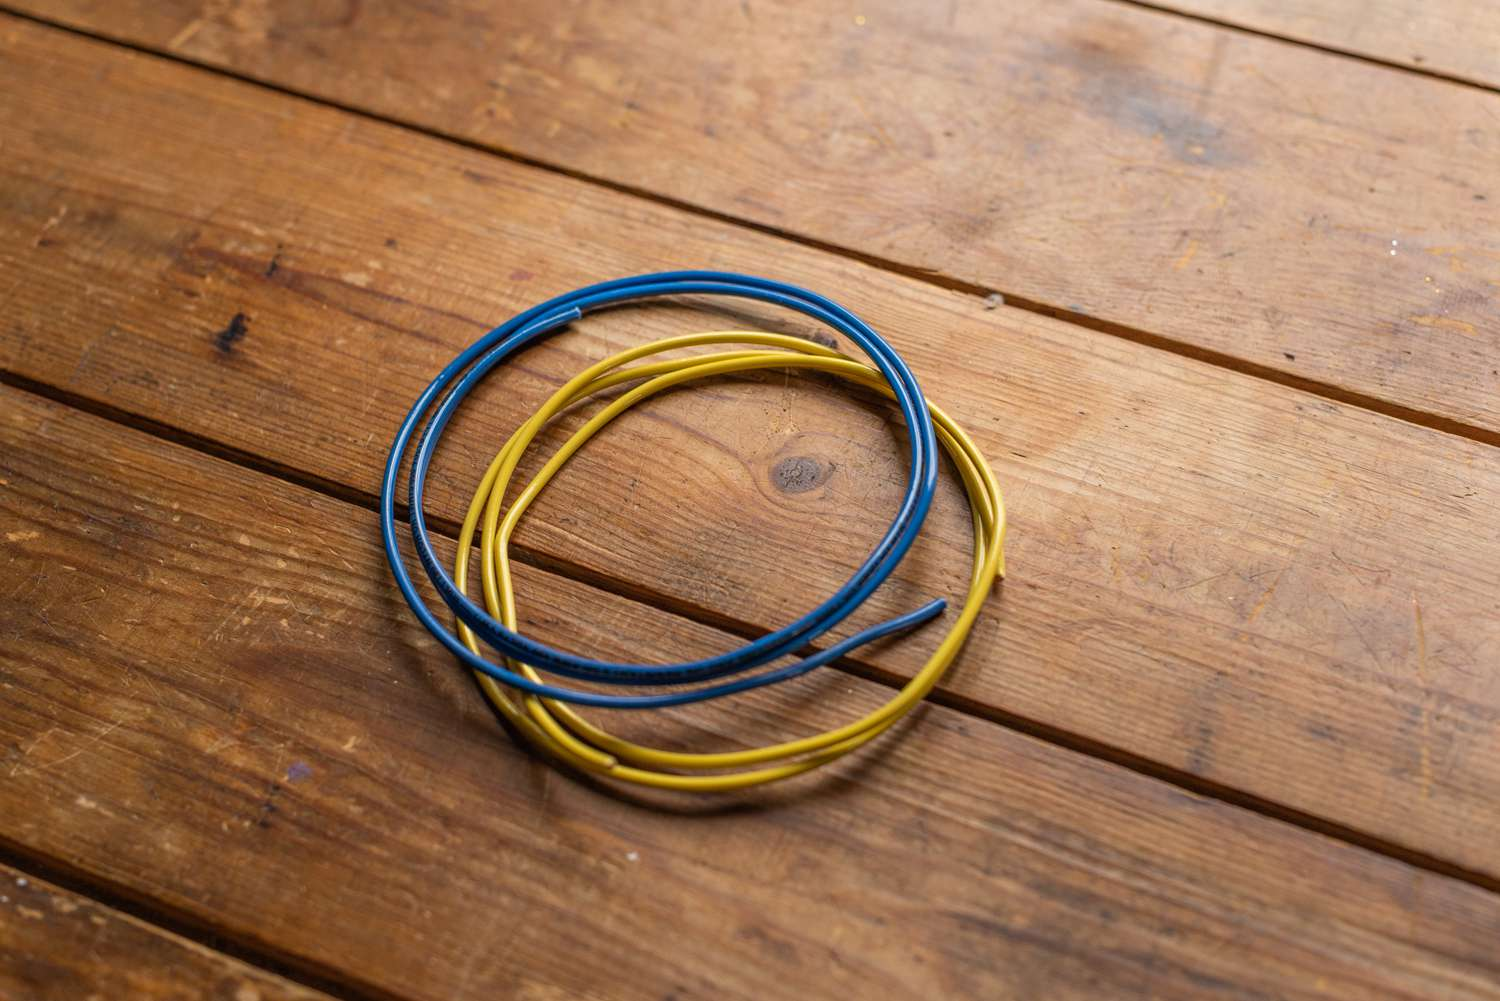 Electrical Wiring Color Coding System House Switch Loop Blue And Yellow Wires Insulation